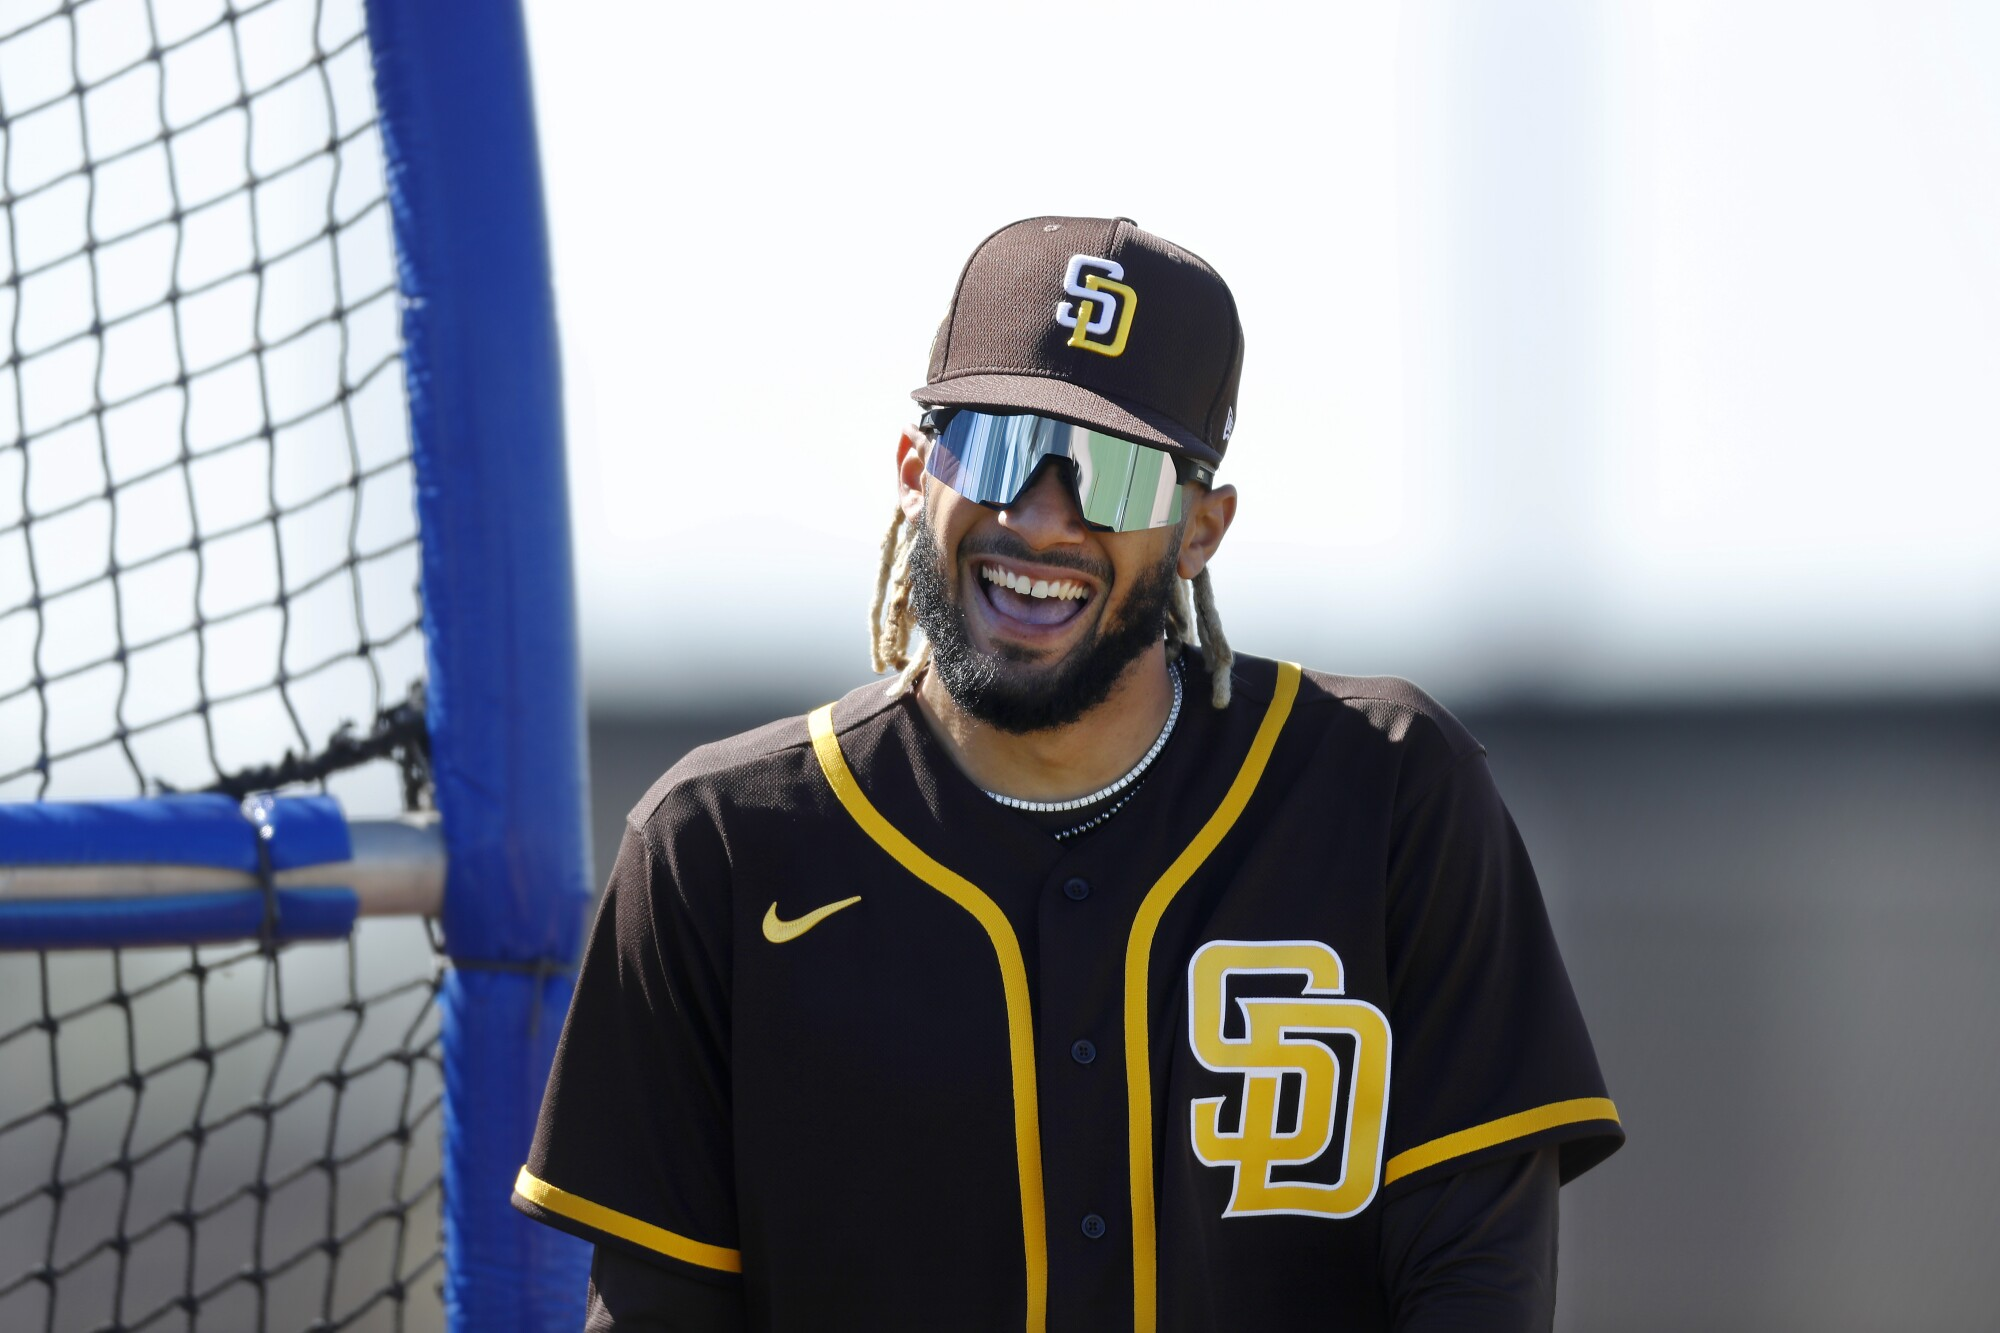 San Diego Padres' Fernando Tatis Jr. smiles as he walks off after batting during a spring training practice in Peoria.